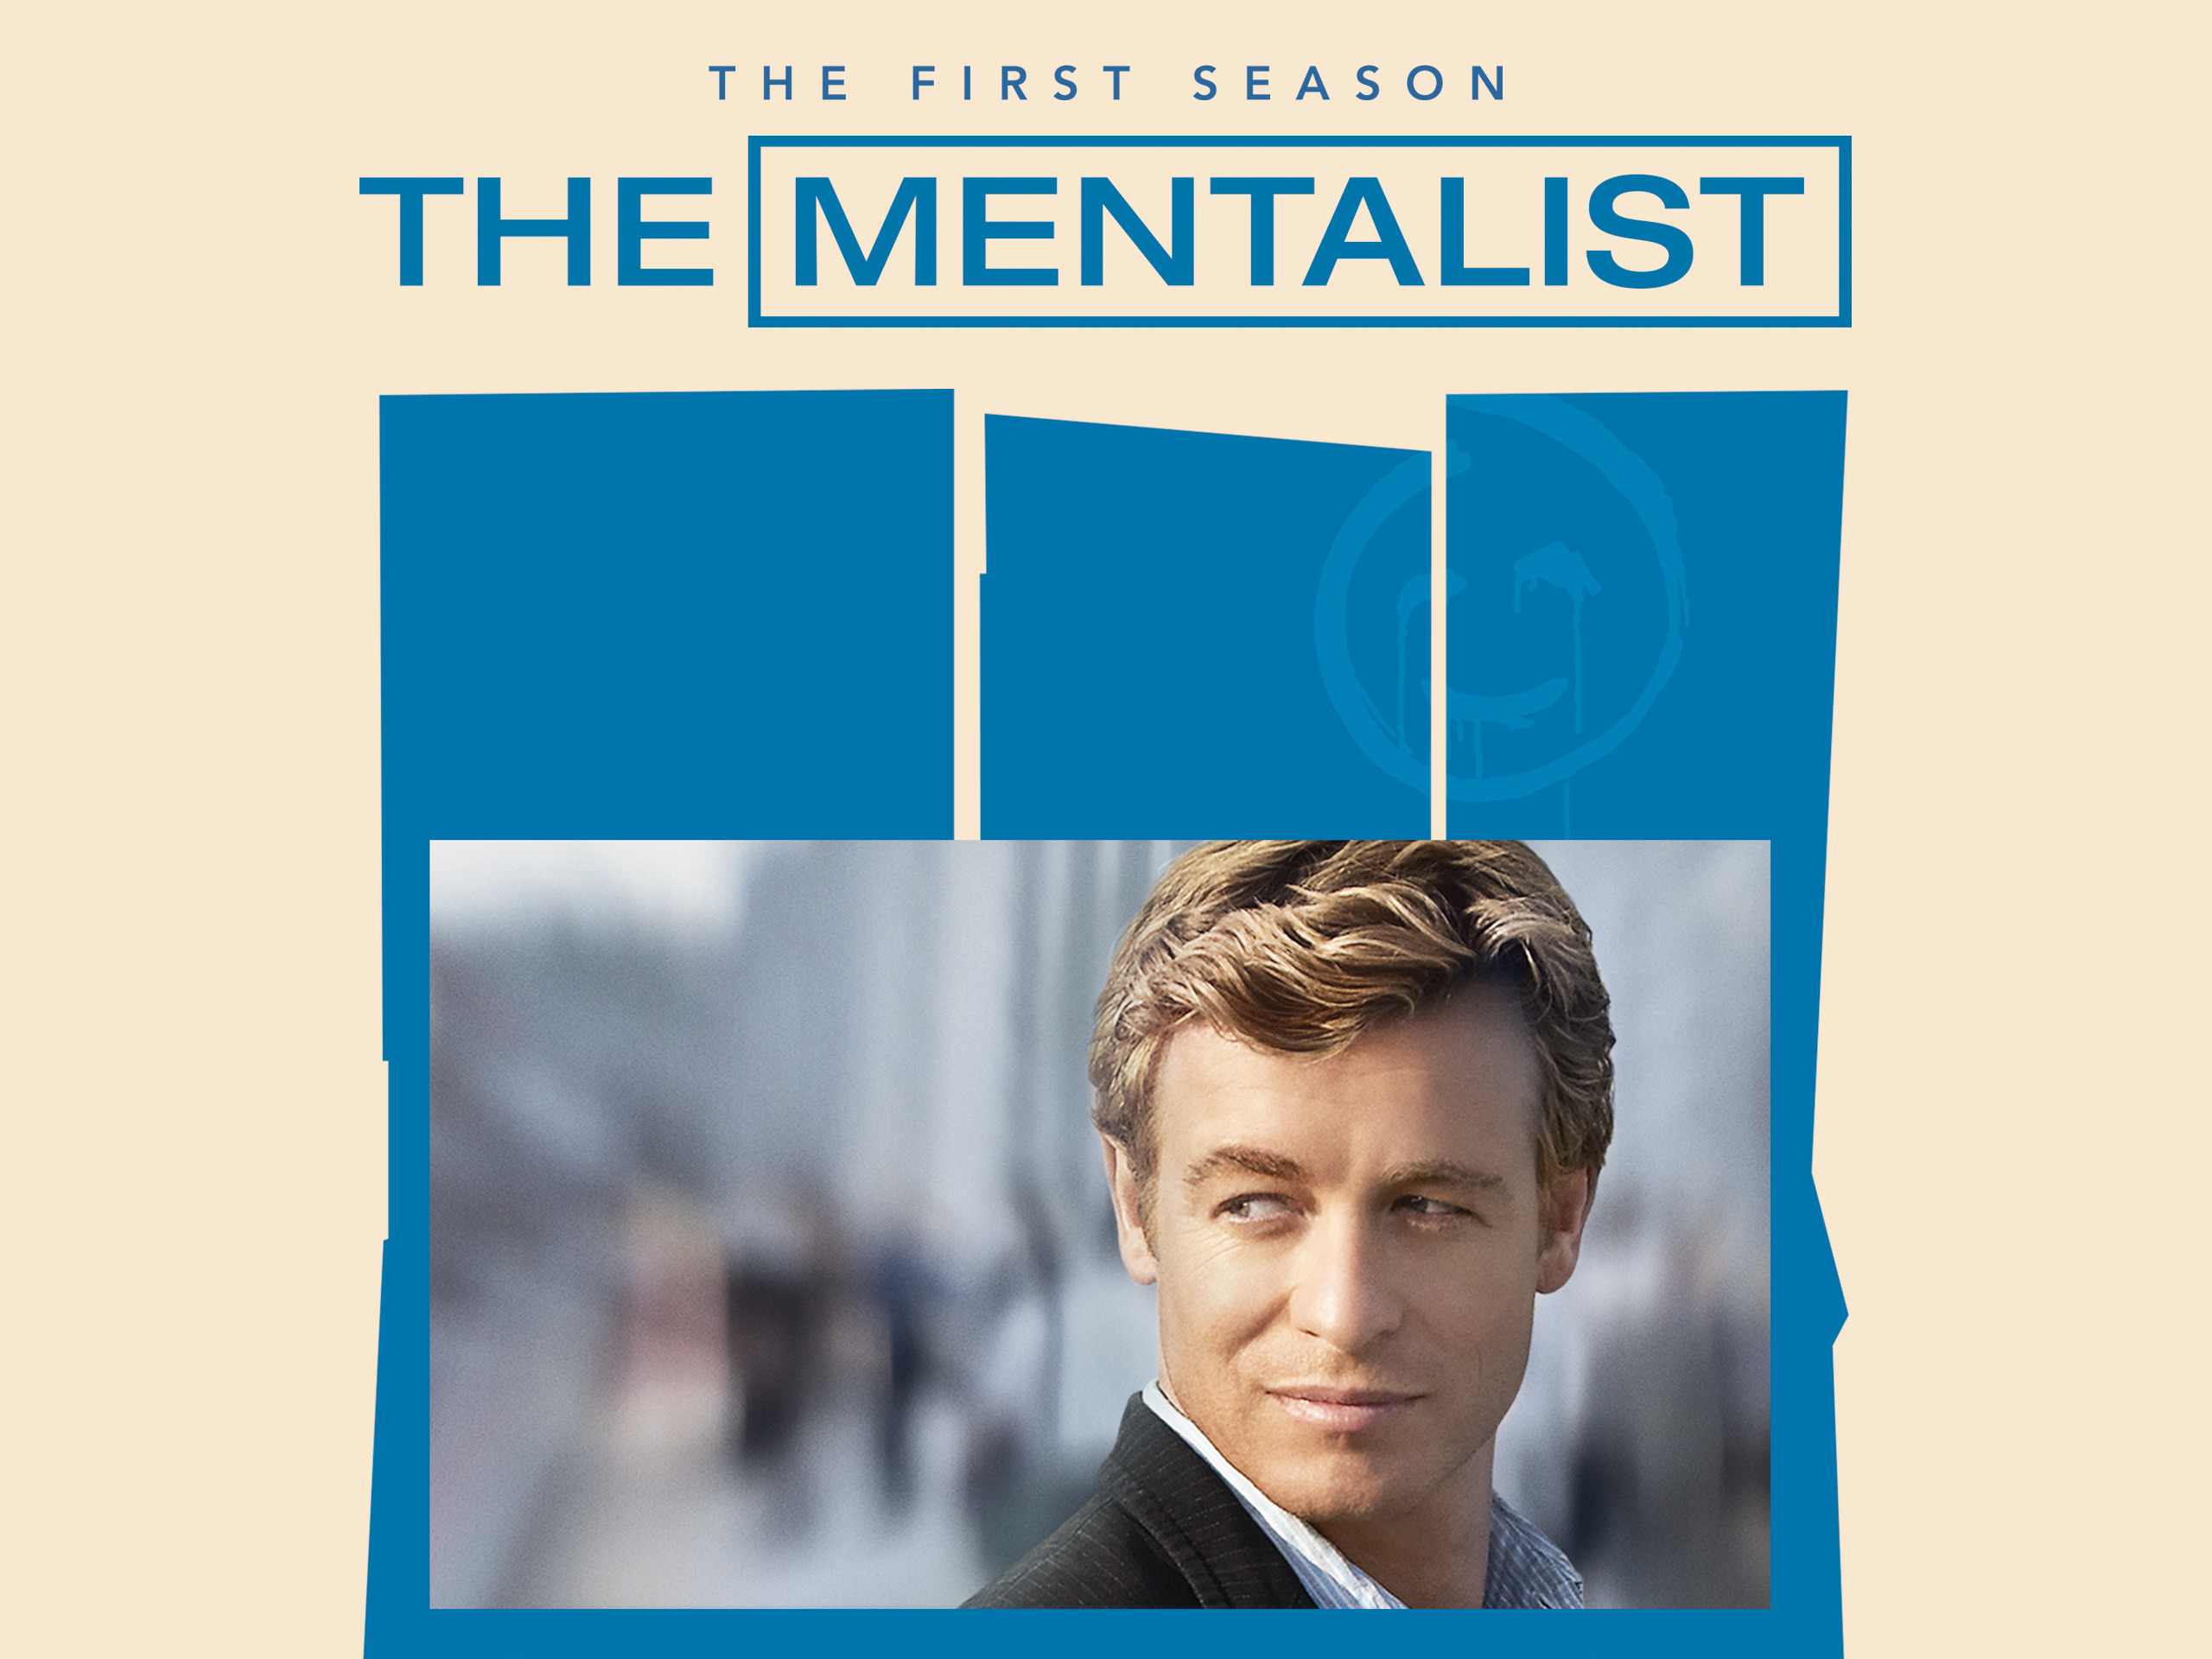 Prime Video: The Mentalist: The Complete First Season